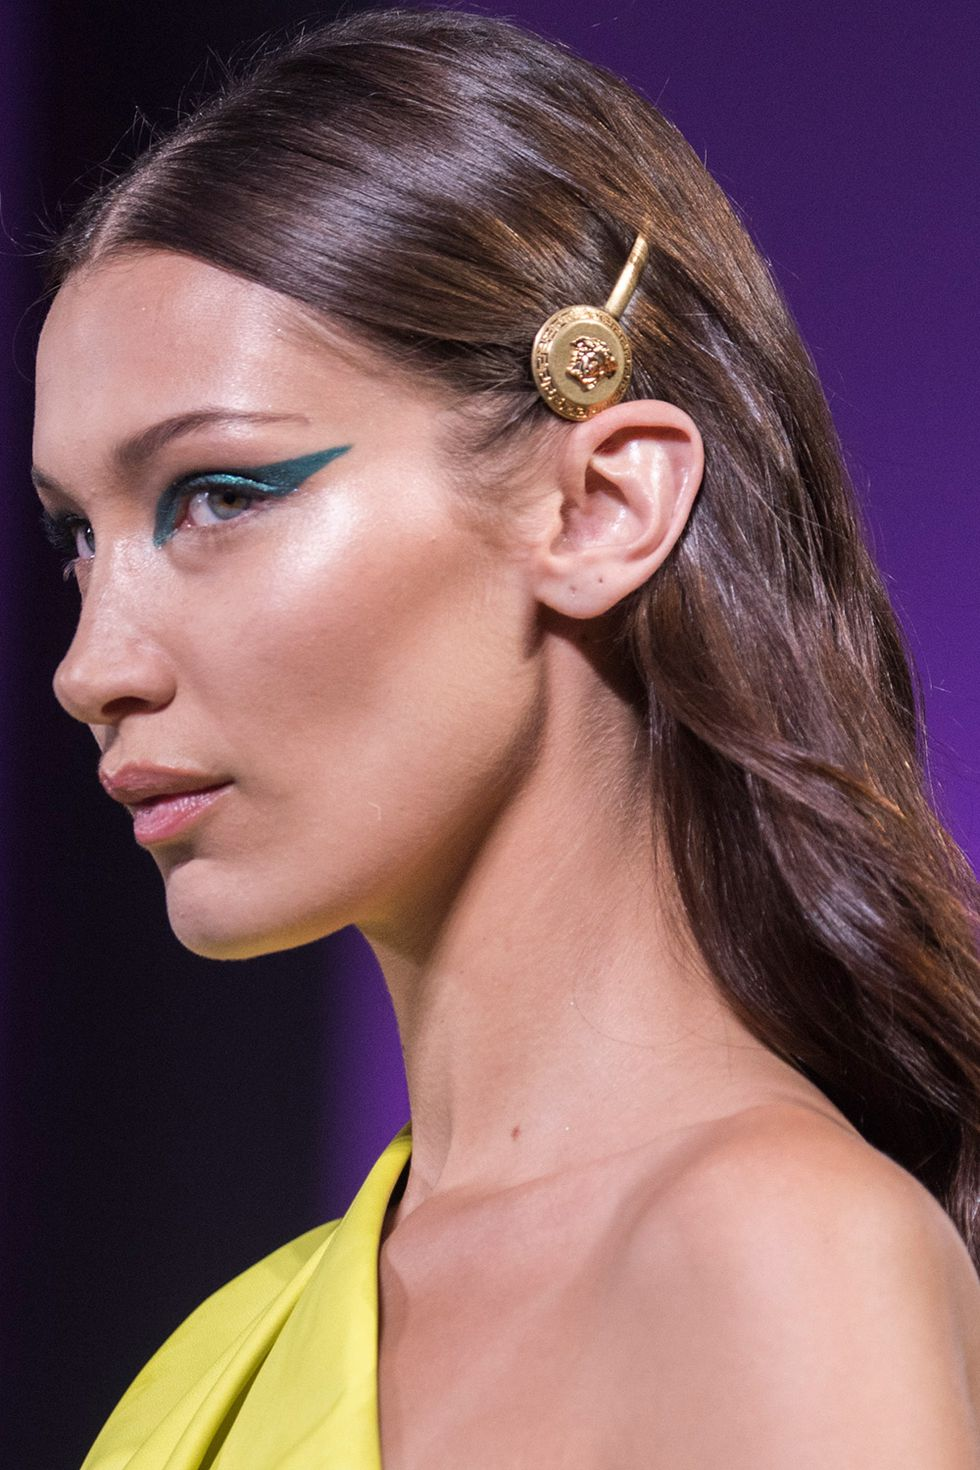 Graphic Glitters Makeup Trend